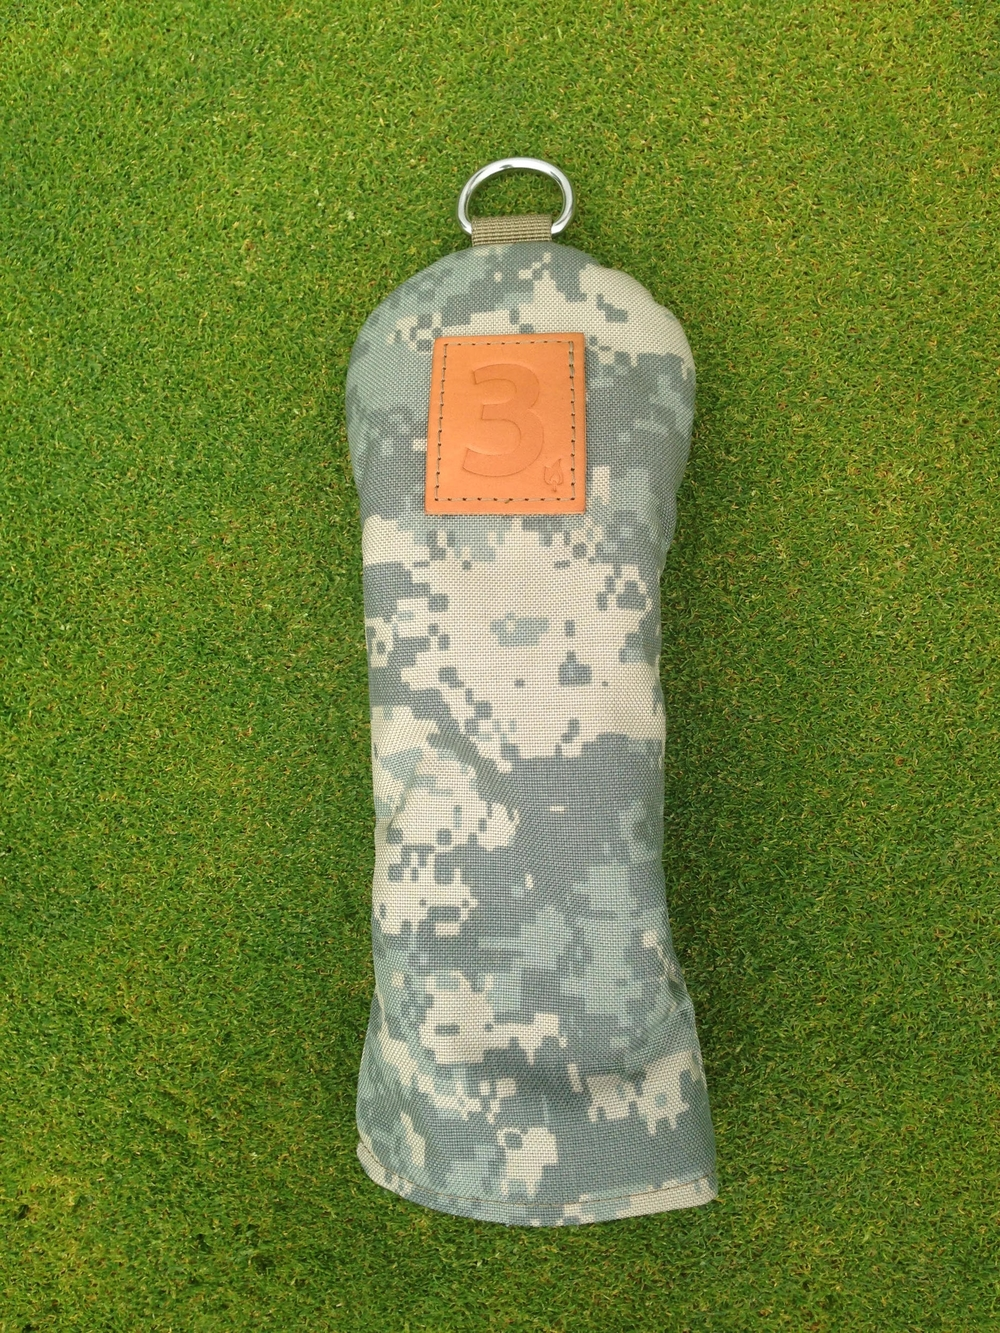 The Digital Camouflage Cover incorporates a Tan leather patch with a choice of options